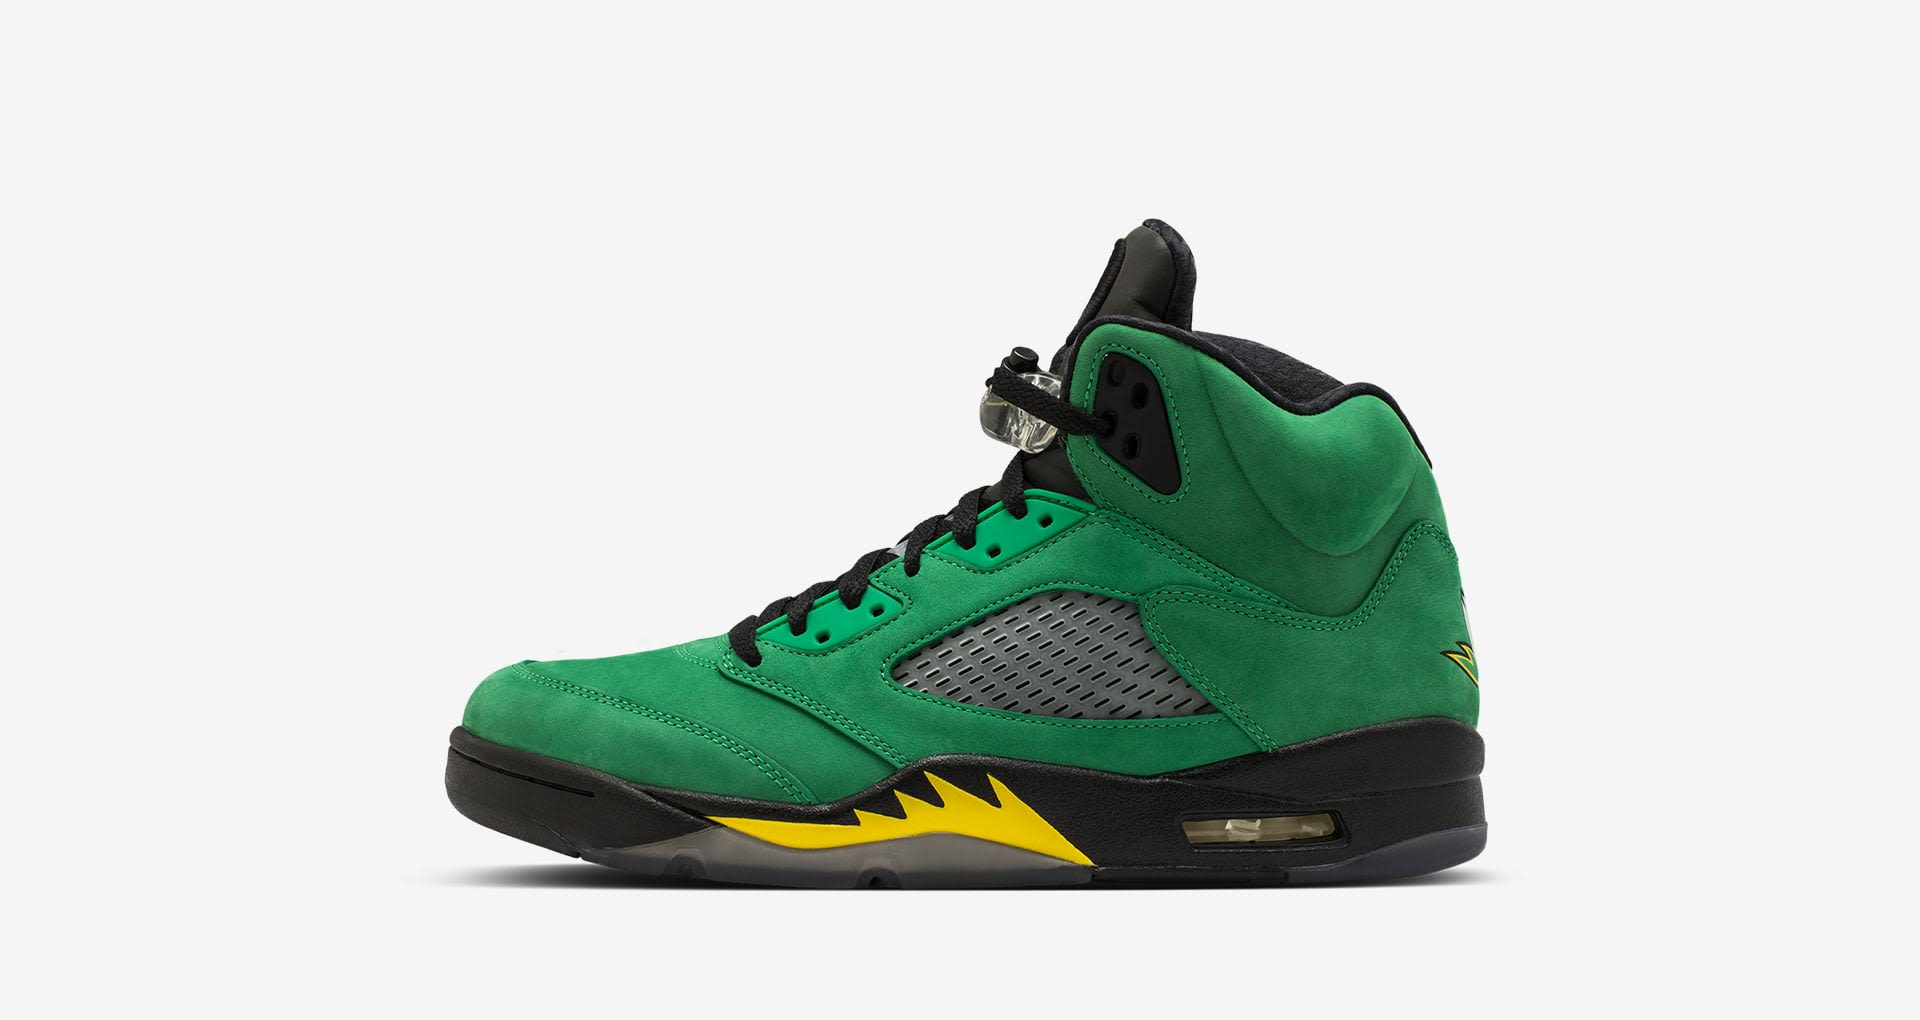 promo code e8011 74c61 Inside the Vault  Oregon Ducks x Jordan Brand. Nike⁠+ SNKRS